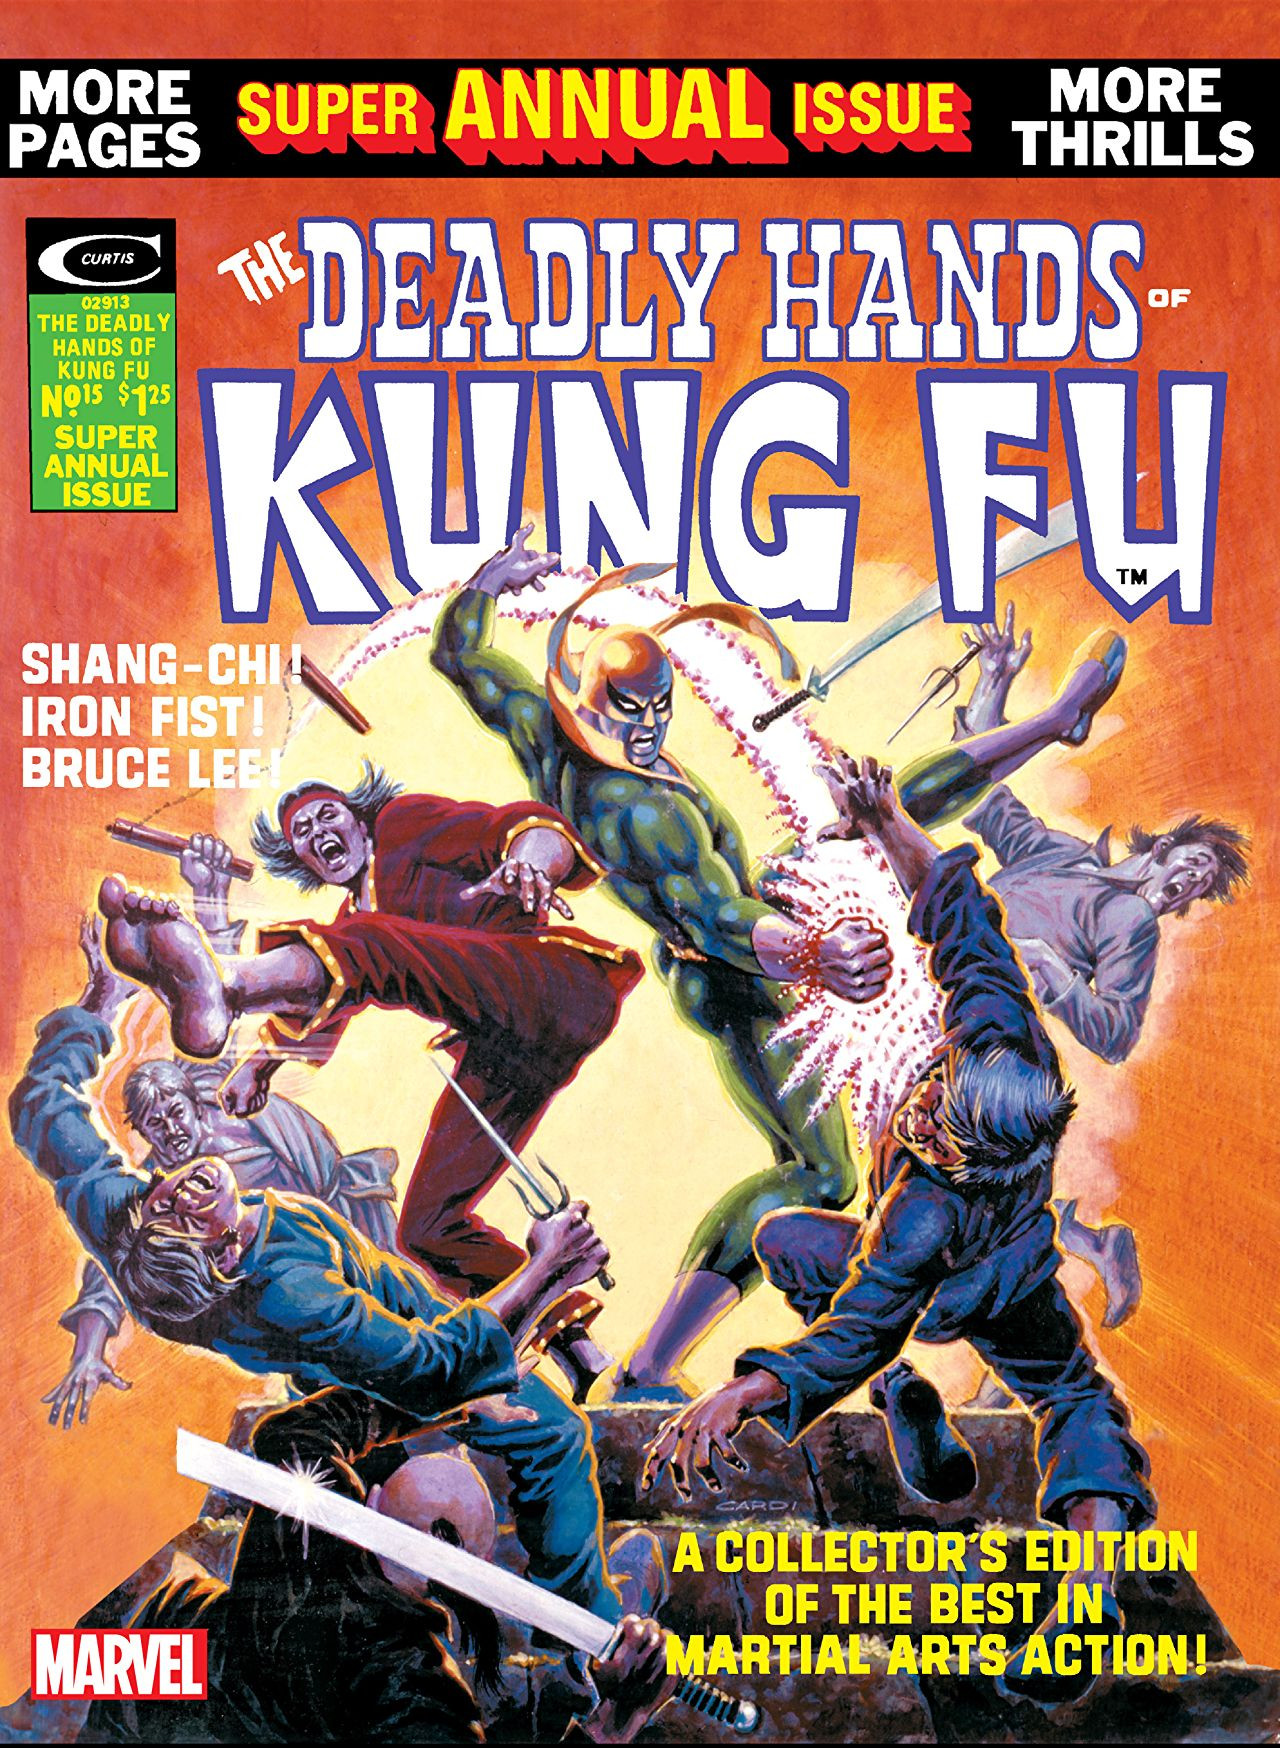 Cover di Deadly Hands of Kung Fu 15 del 1975, di Nick Cardy